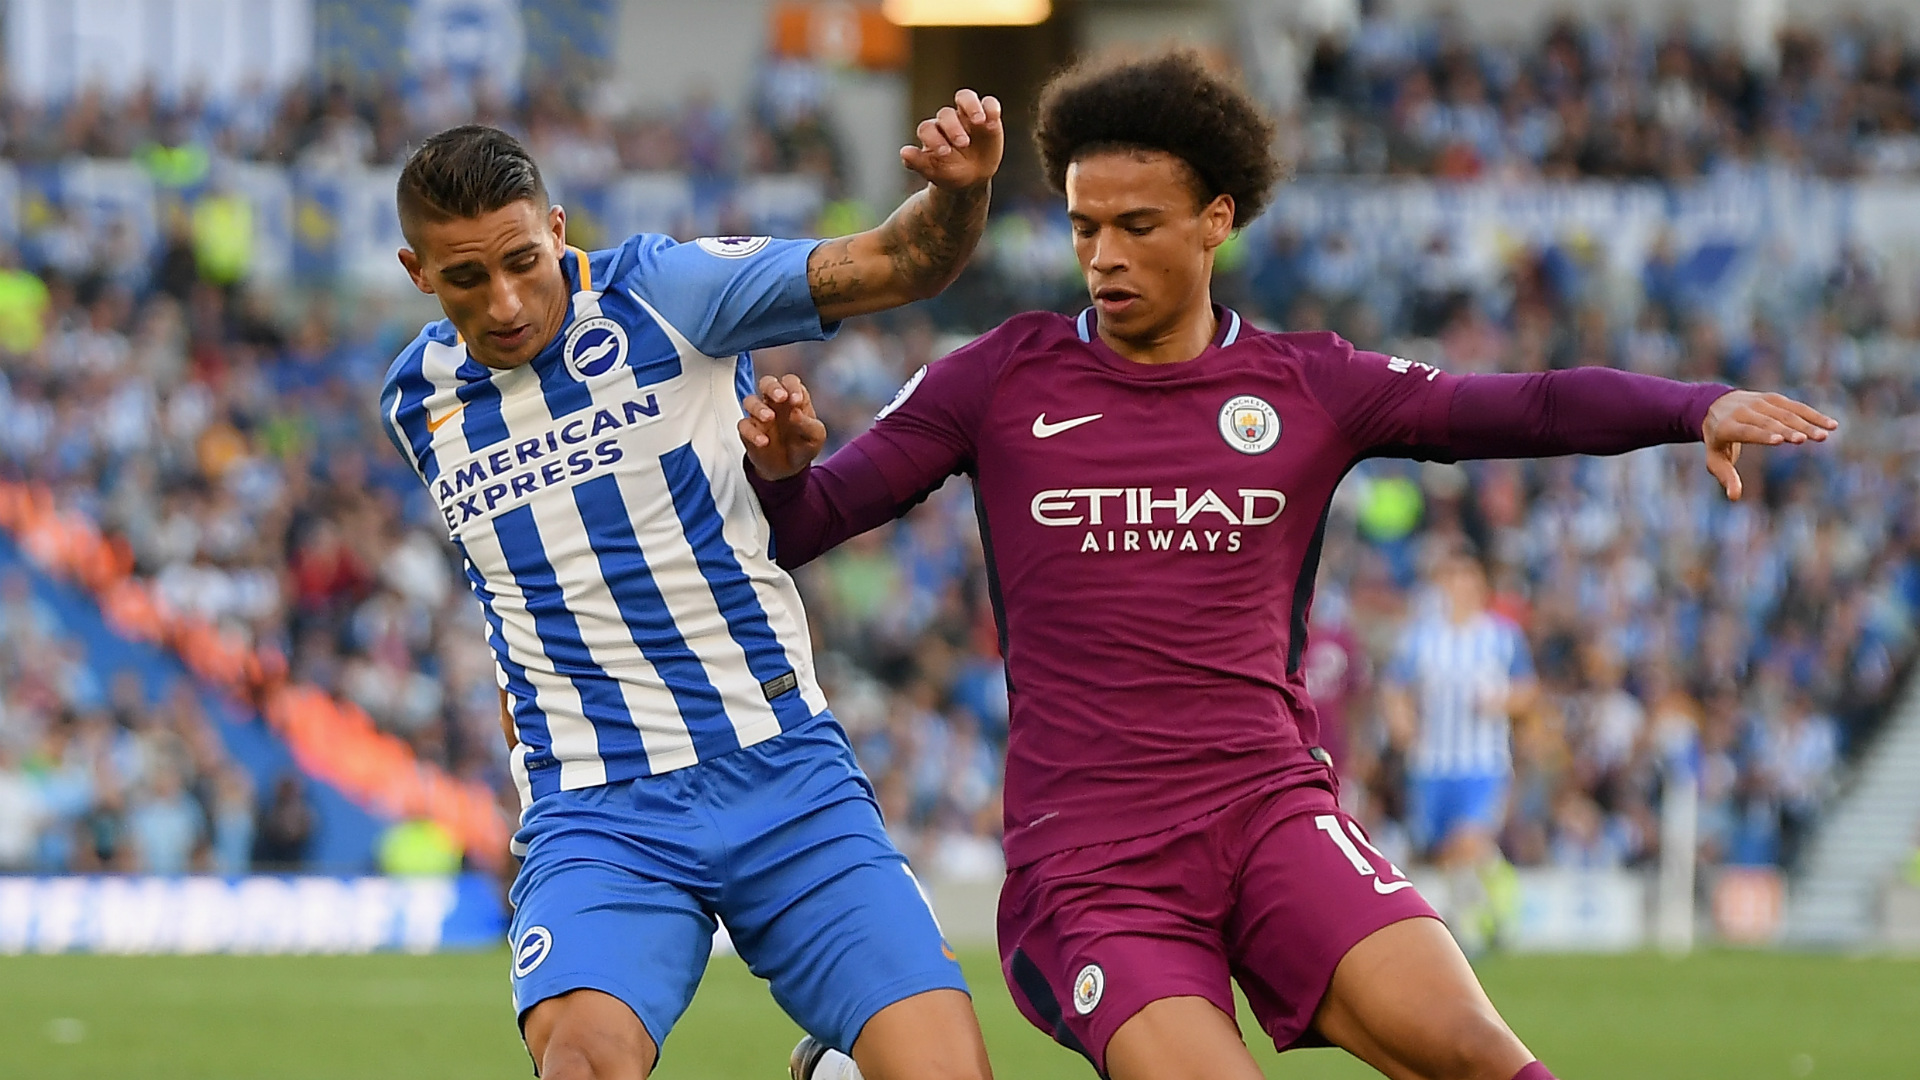 Manchester City Brighton and Hove Albion